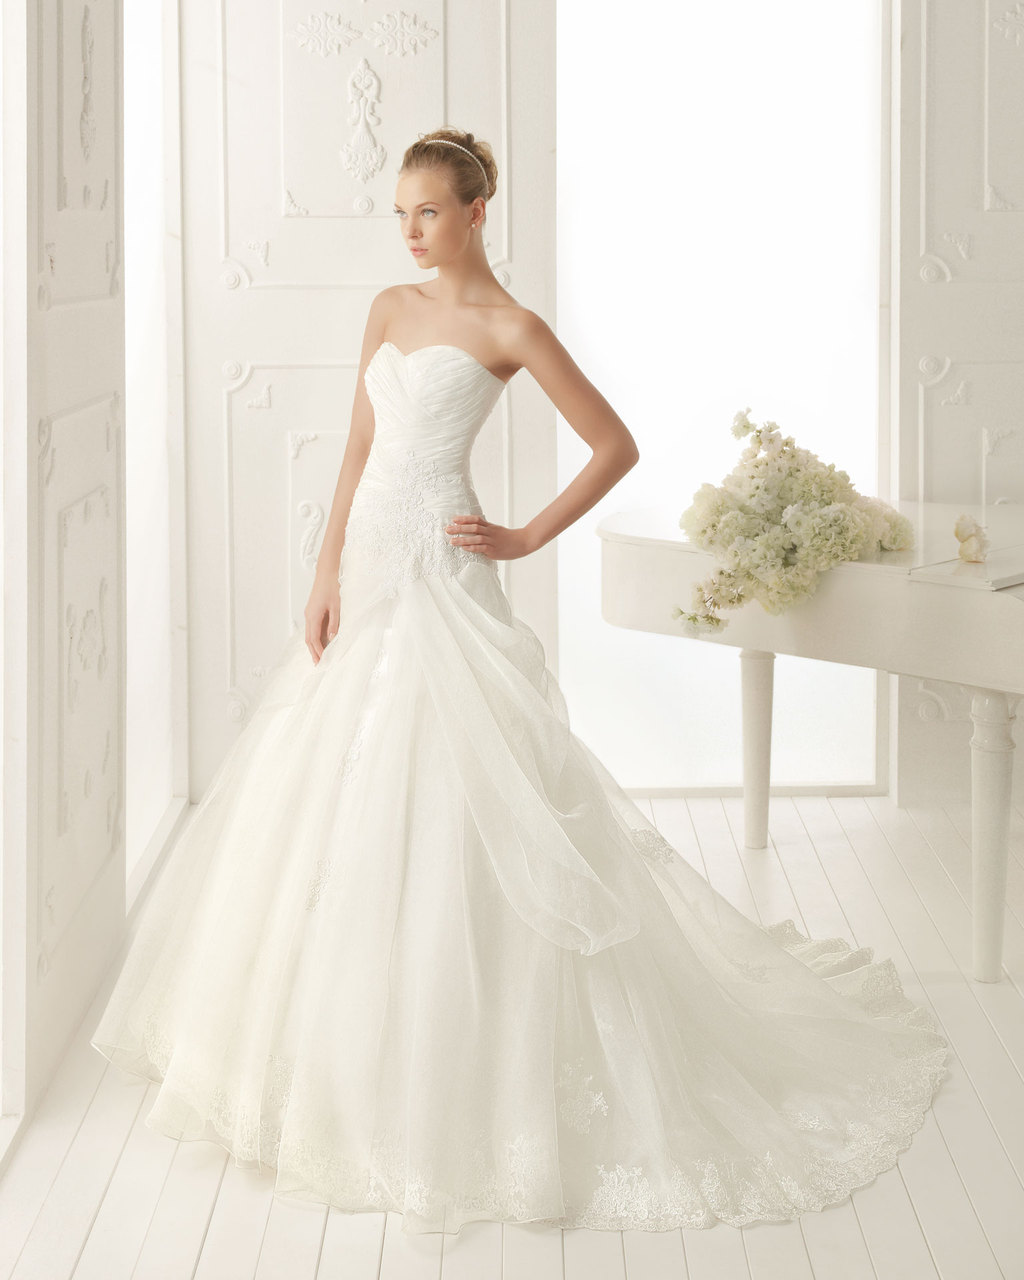 Aire-barcelona-wedding-dress-2013-vintage-bridal-collection-vancouver.full